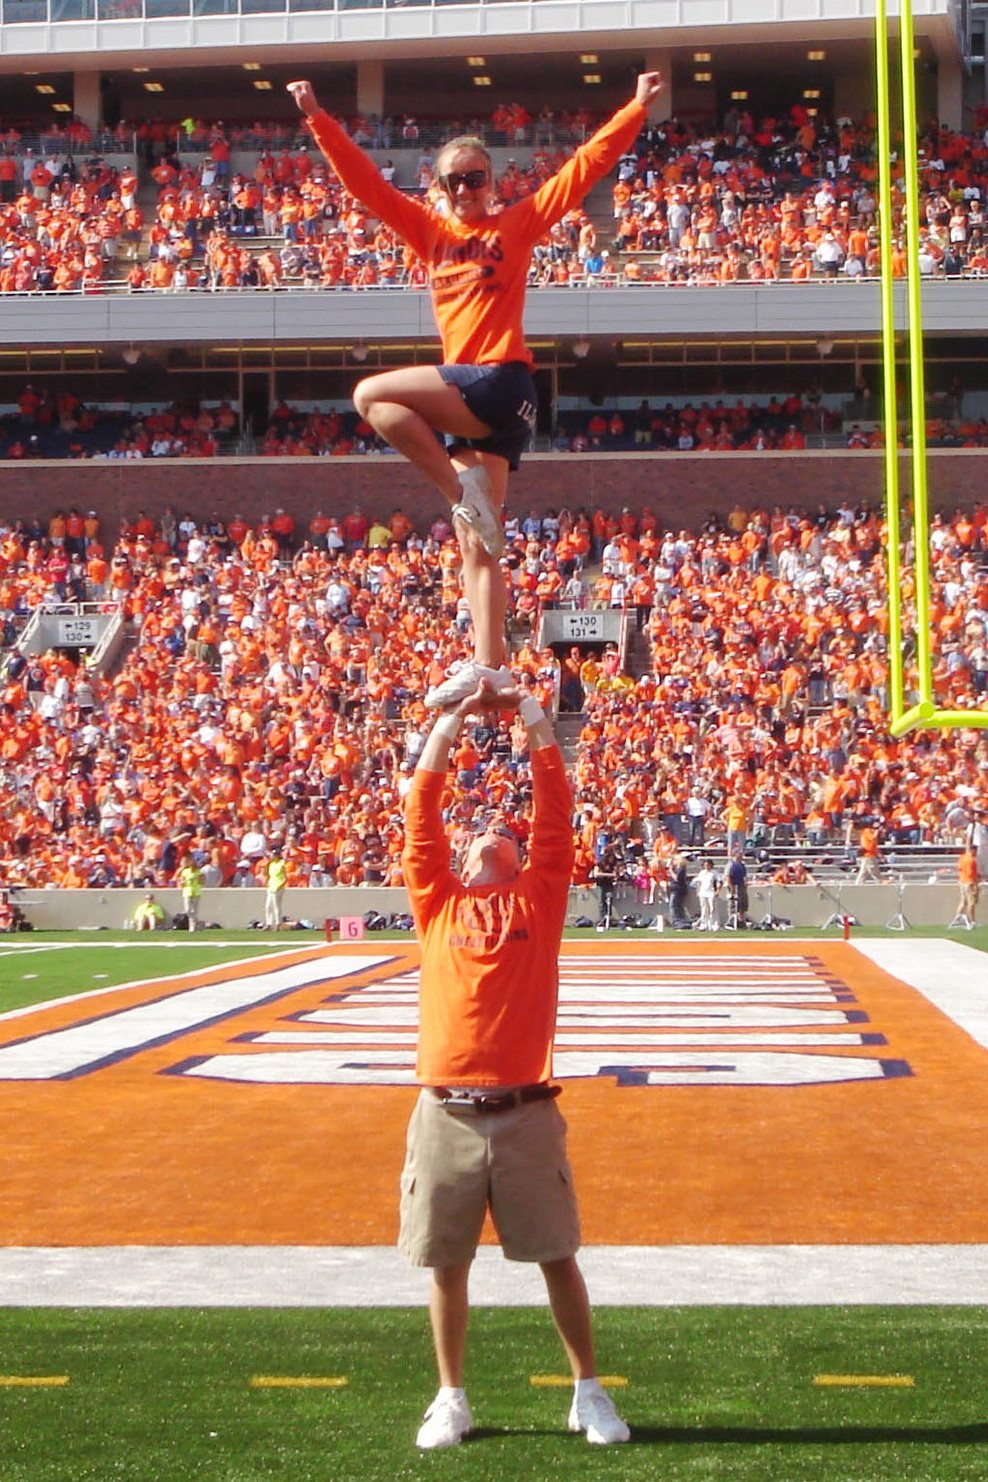 Jamie and Clara performing a stunt on the football field during the 2008 University of Illinois Homecoming game in Champaign, Illinois.